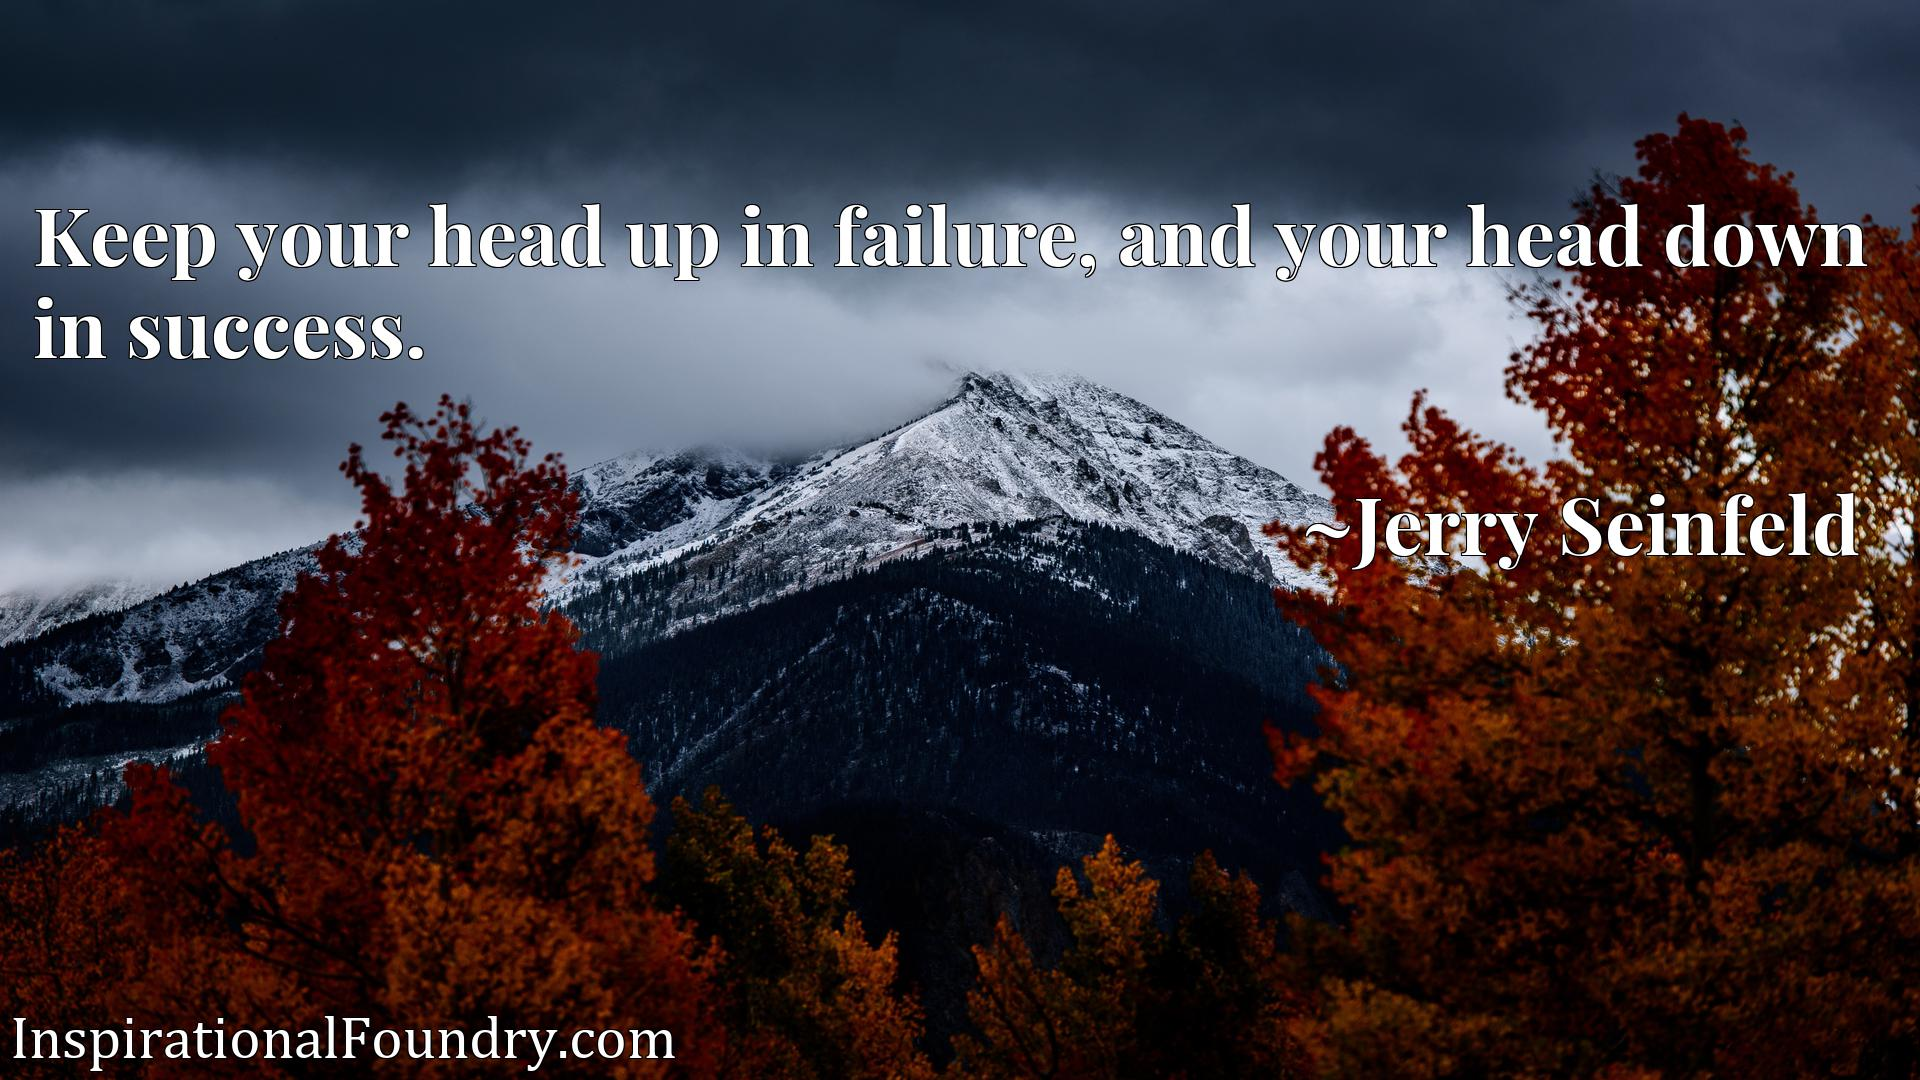 Keep your head up in failure, and your head down in success.